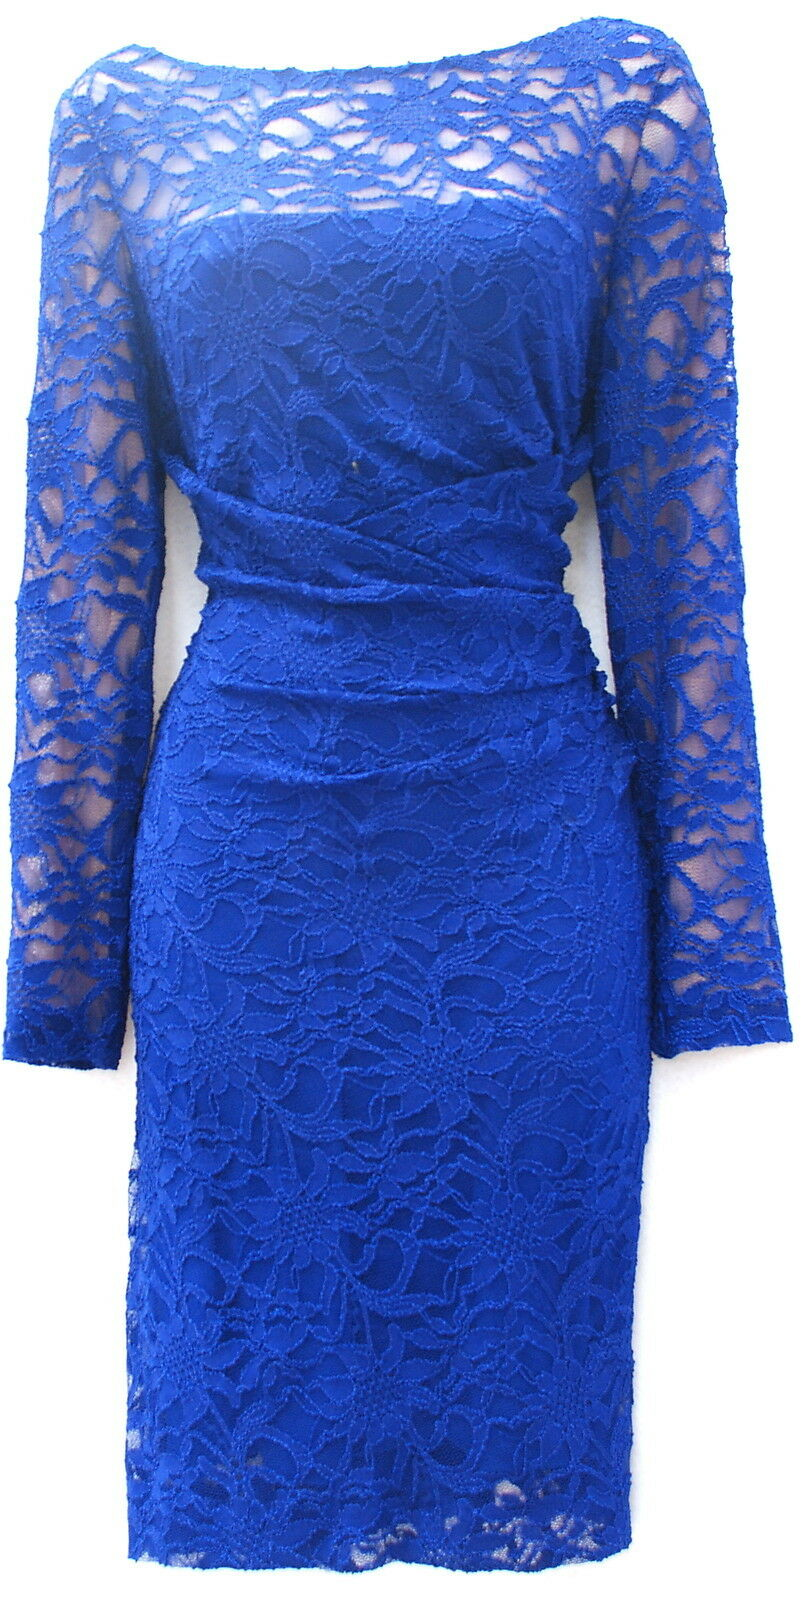 Ralph Lauren lace bluee stretch elegant evening or day occasion event party 16P